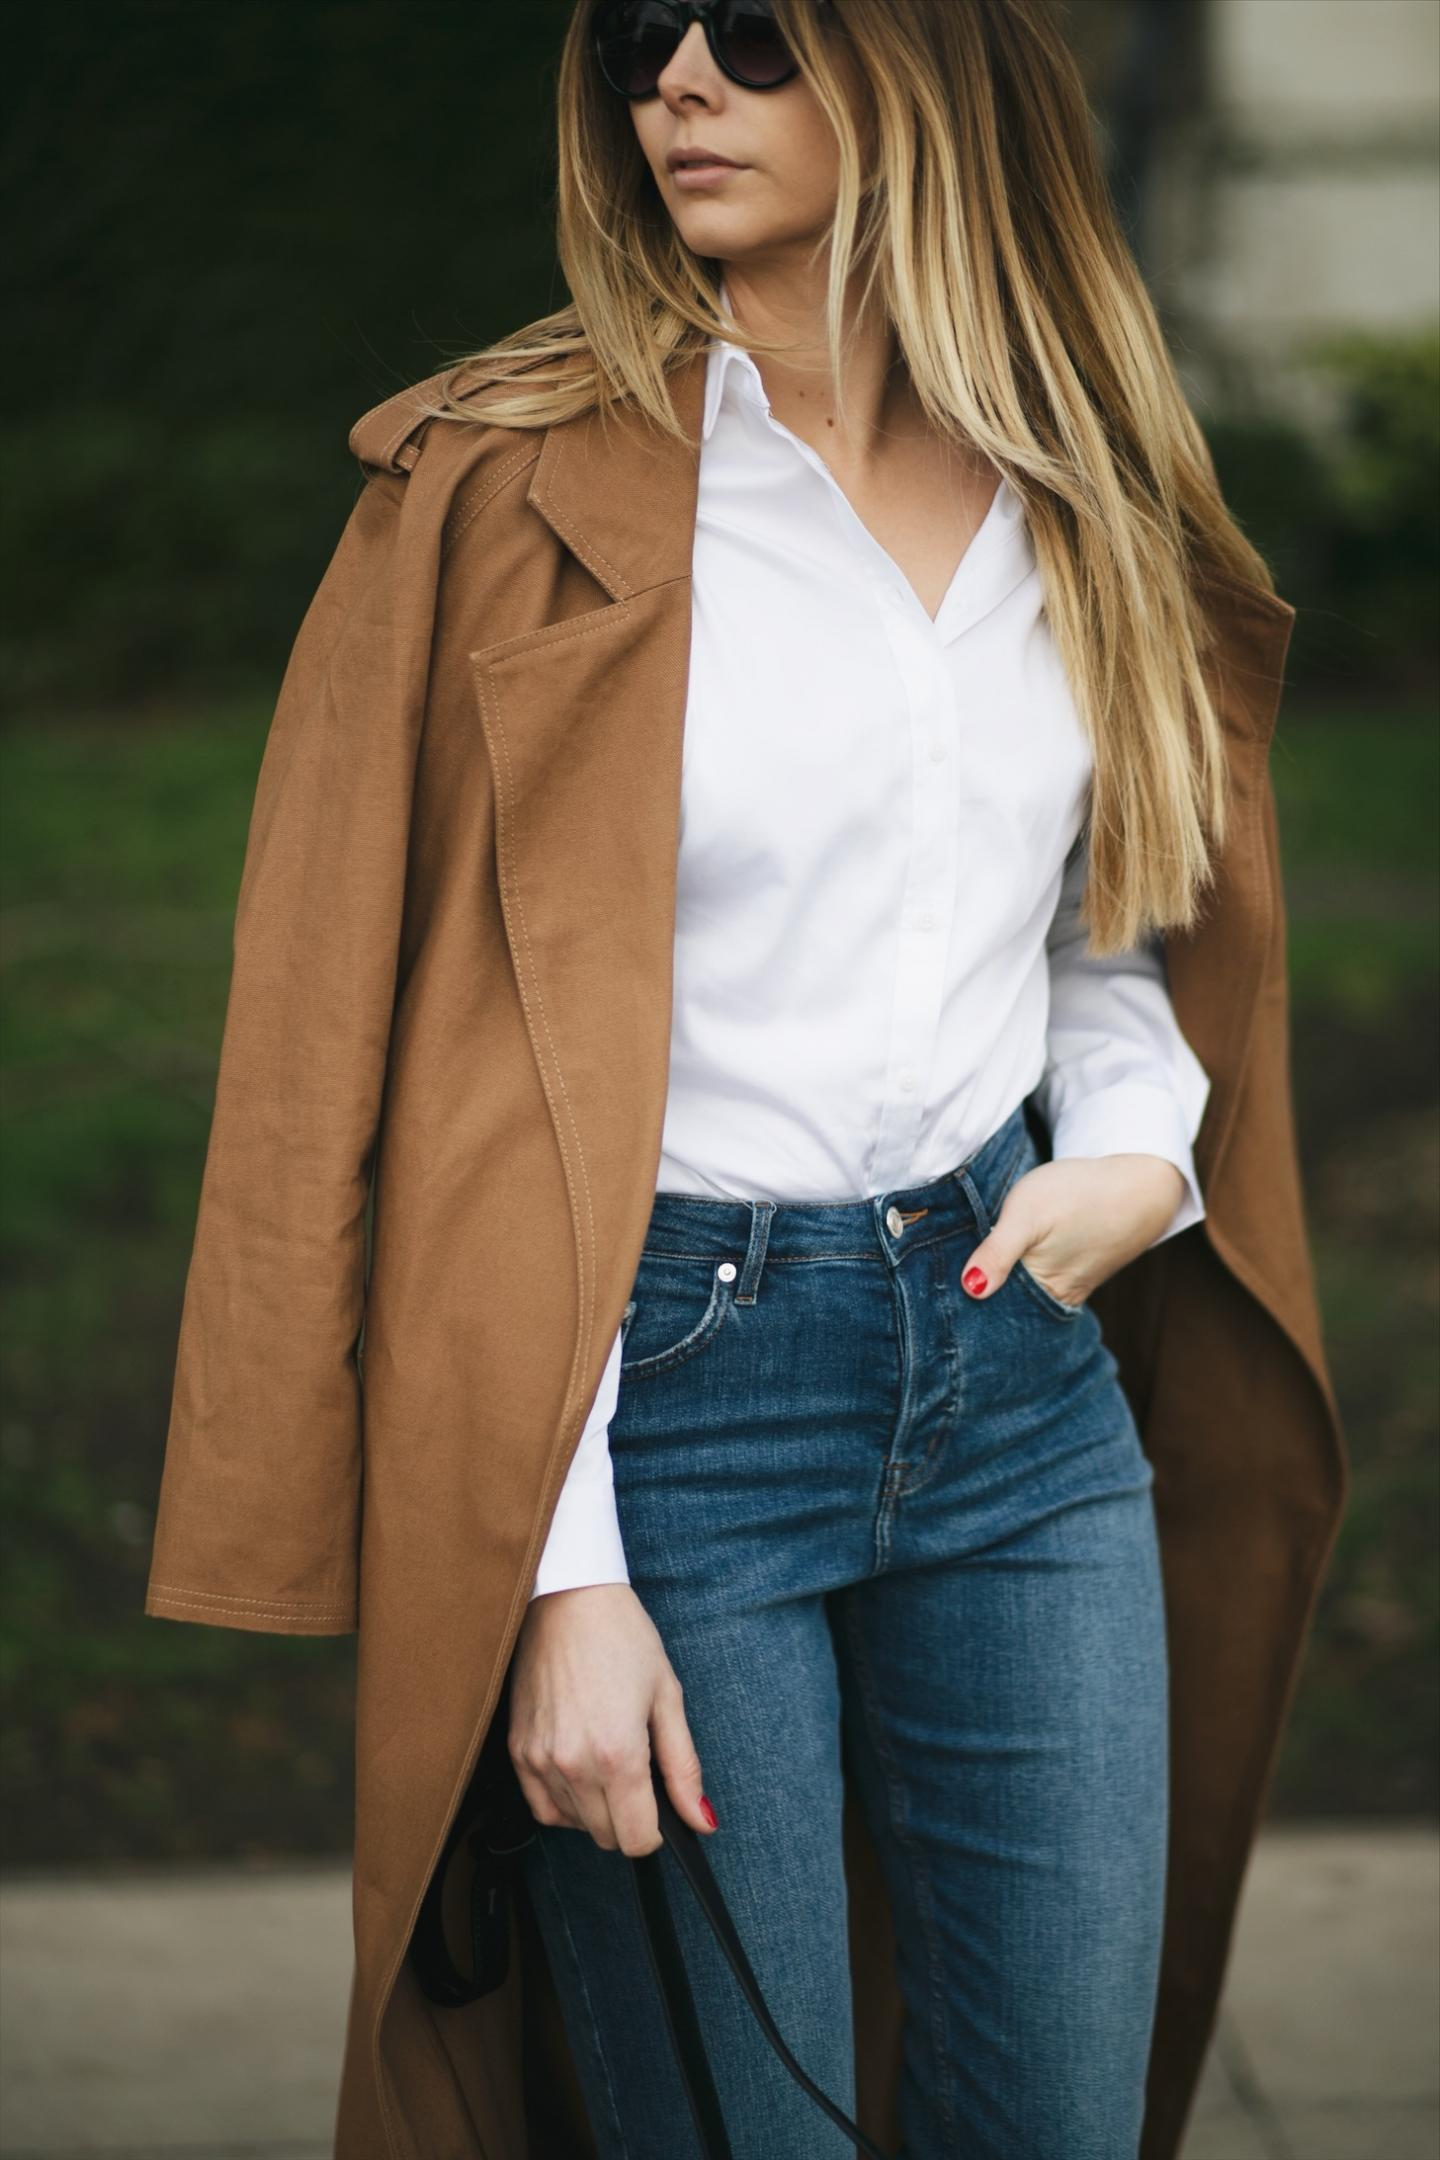 camel trench coat, white shirt, denim, small cross body shoulder bag